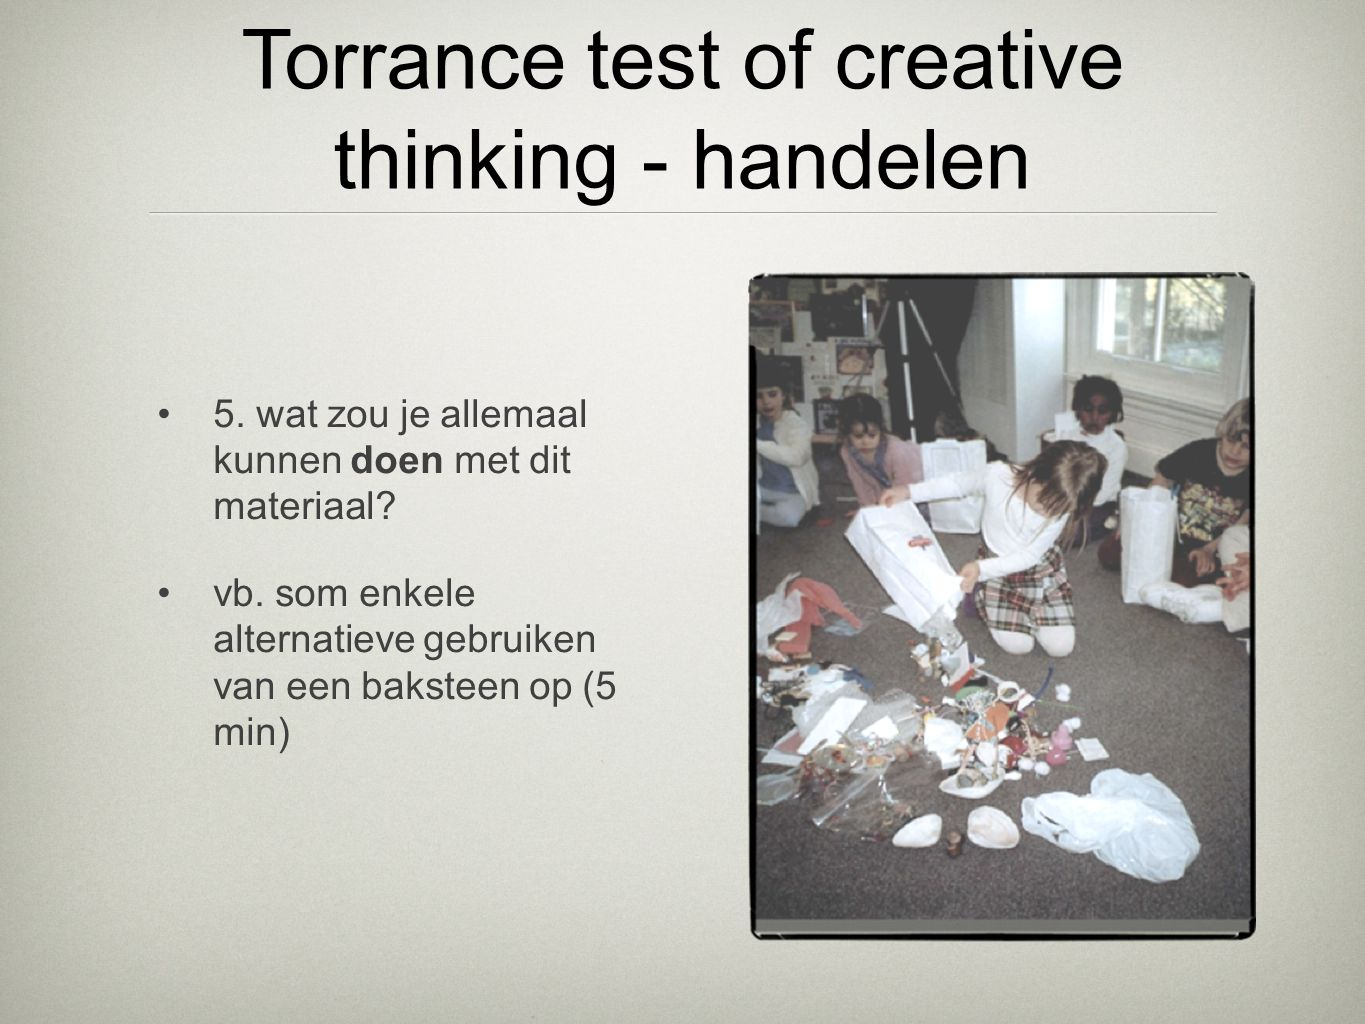 Torrance test of creative thinking - handelen